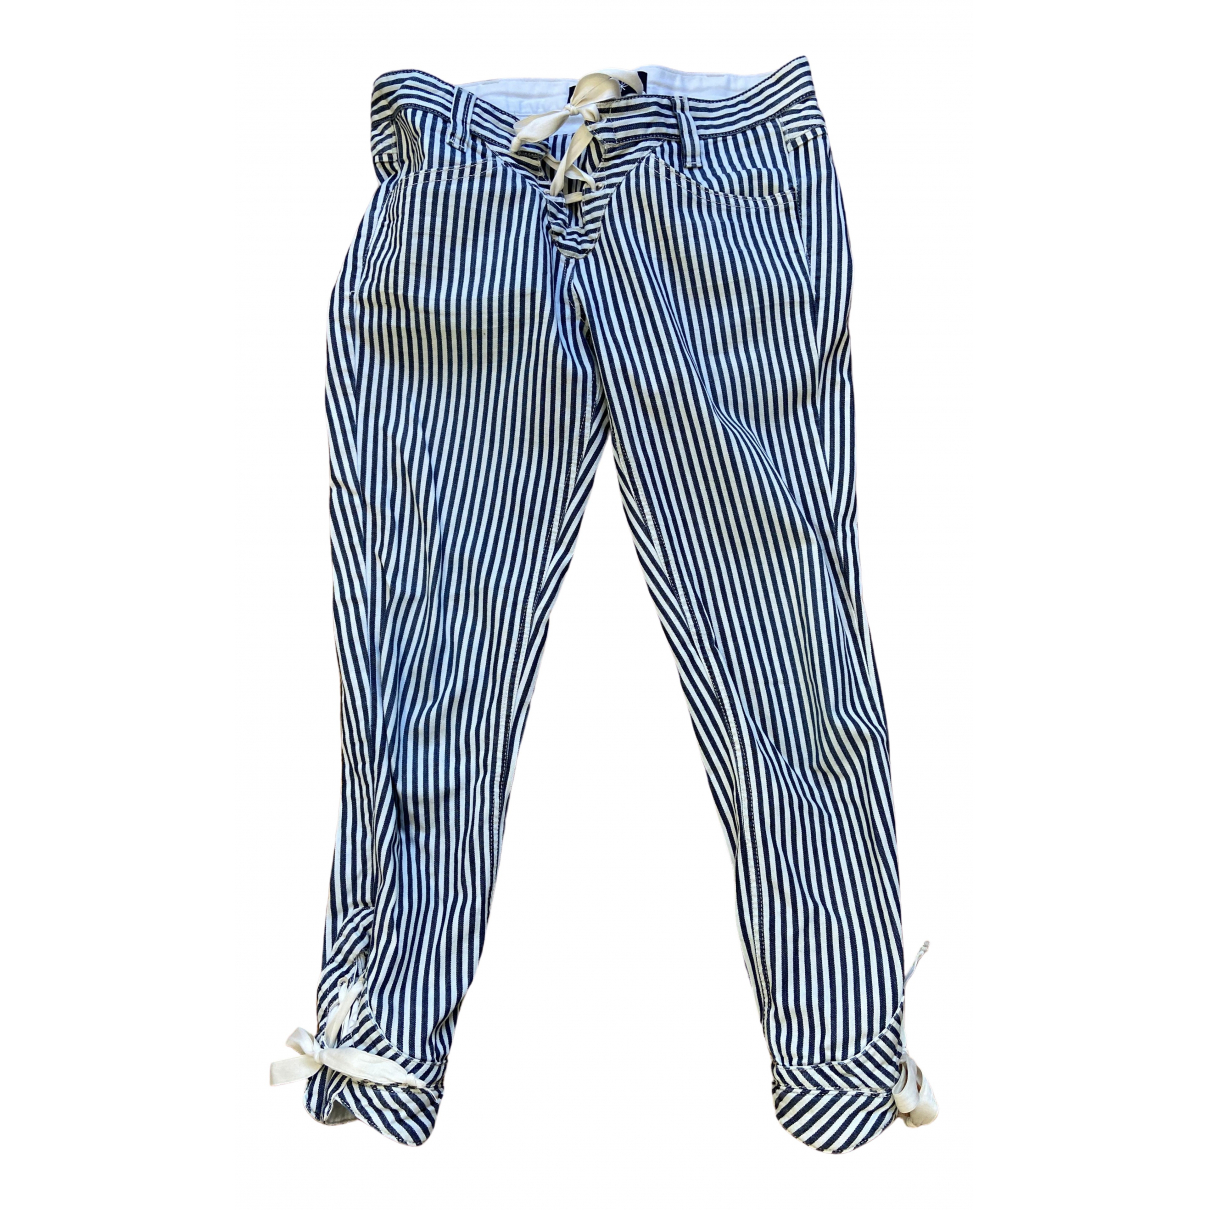 Isabel Marant \N Blue Cotton Trousers for Women 0 0-5